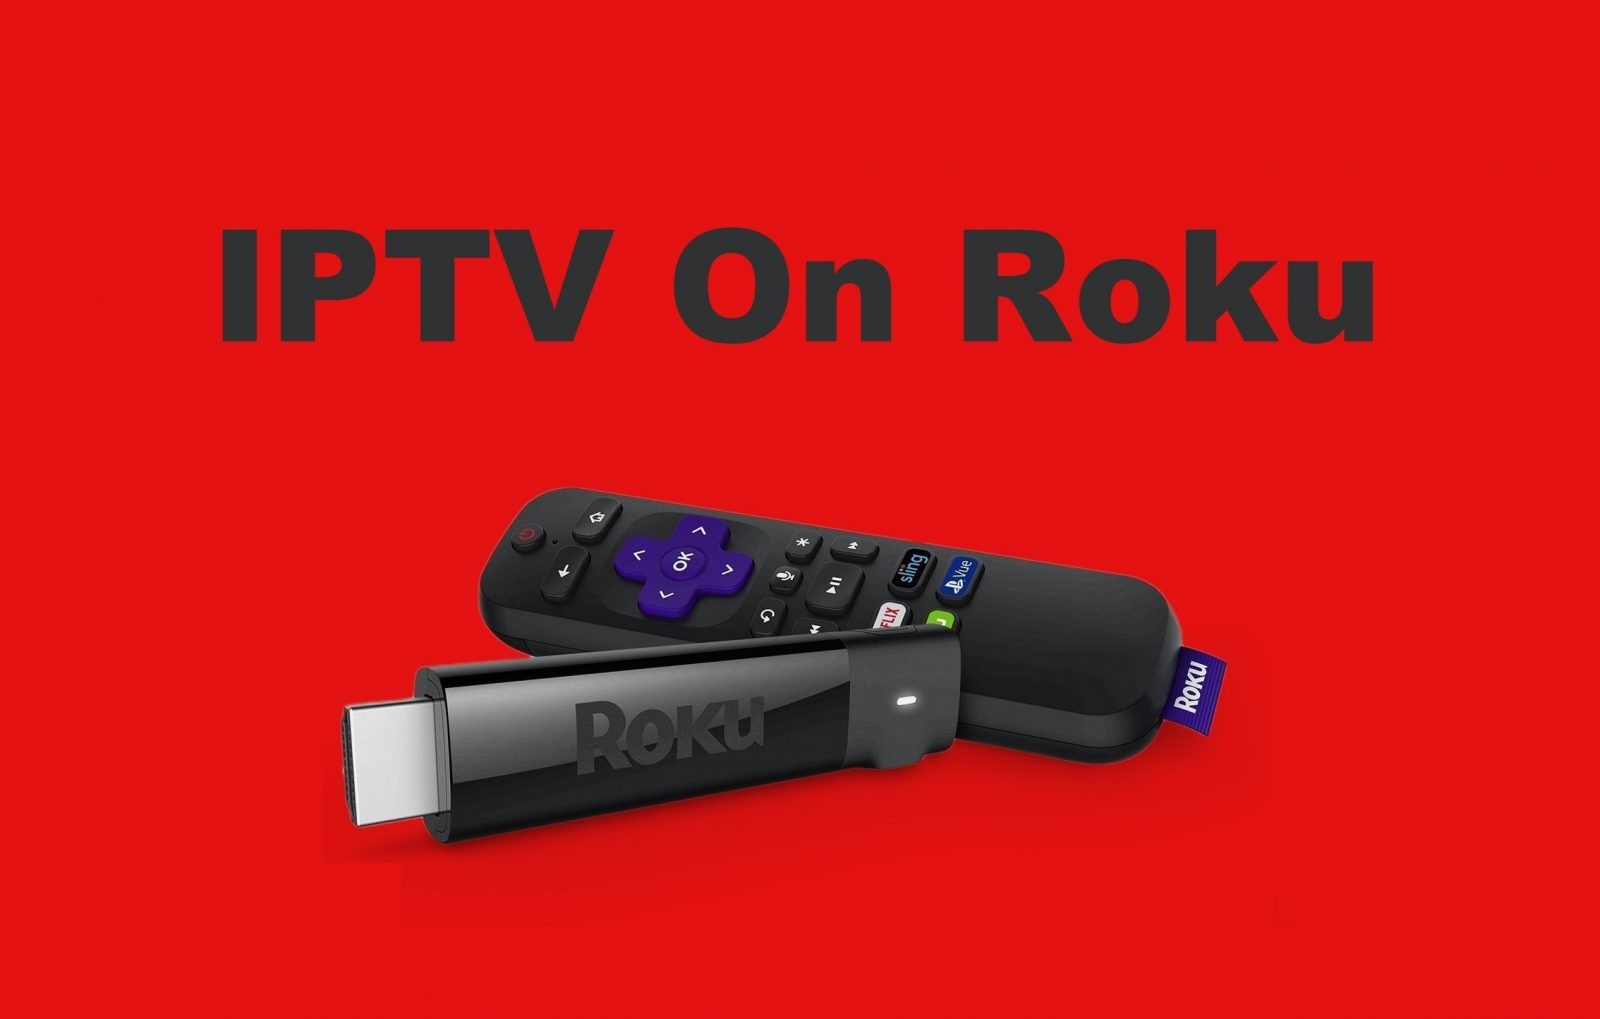 How to Install and Watch IPTV on Roku [2 Methods]